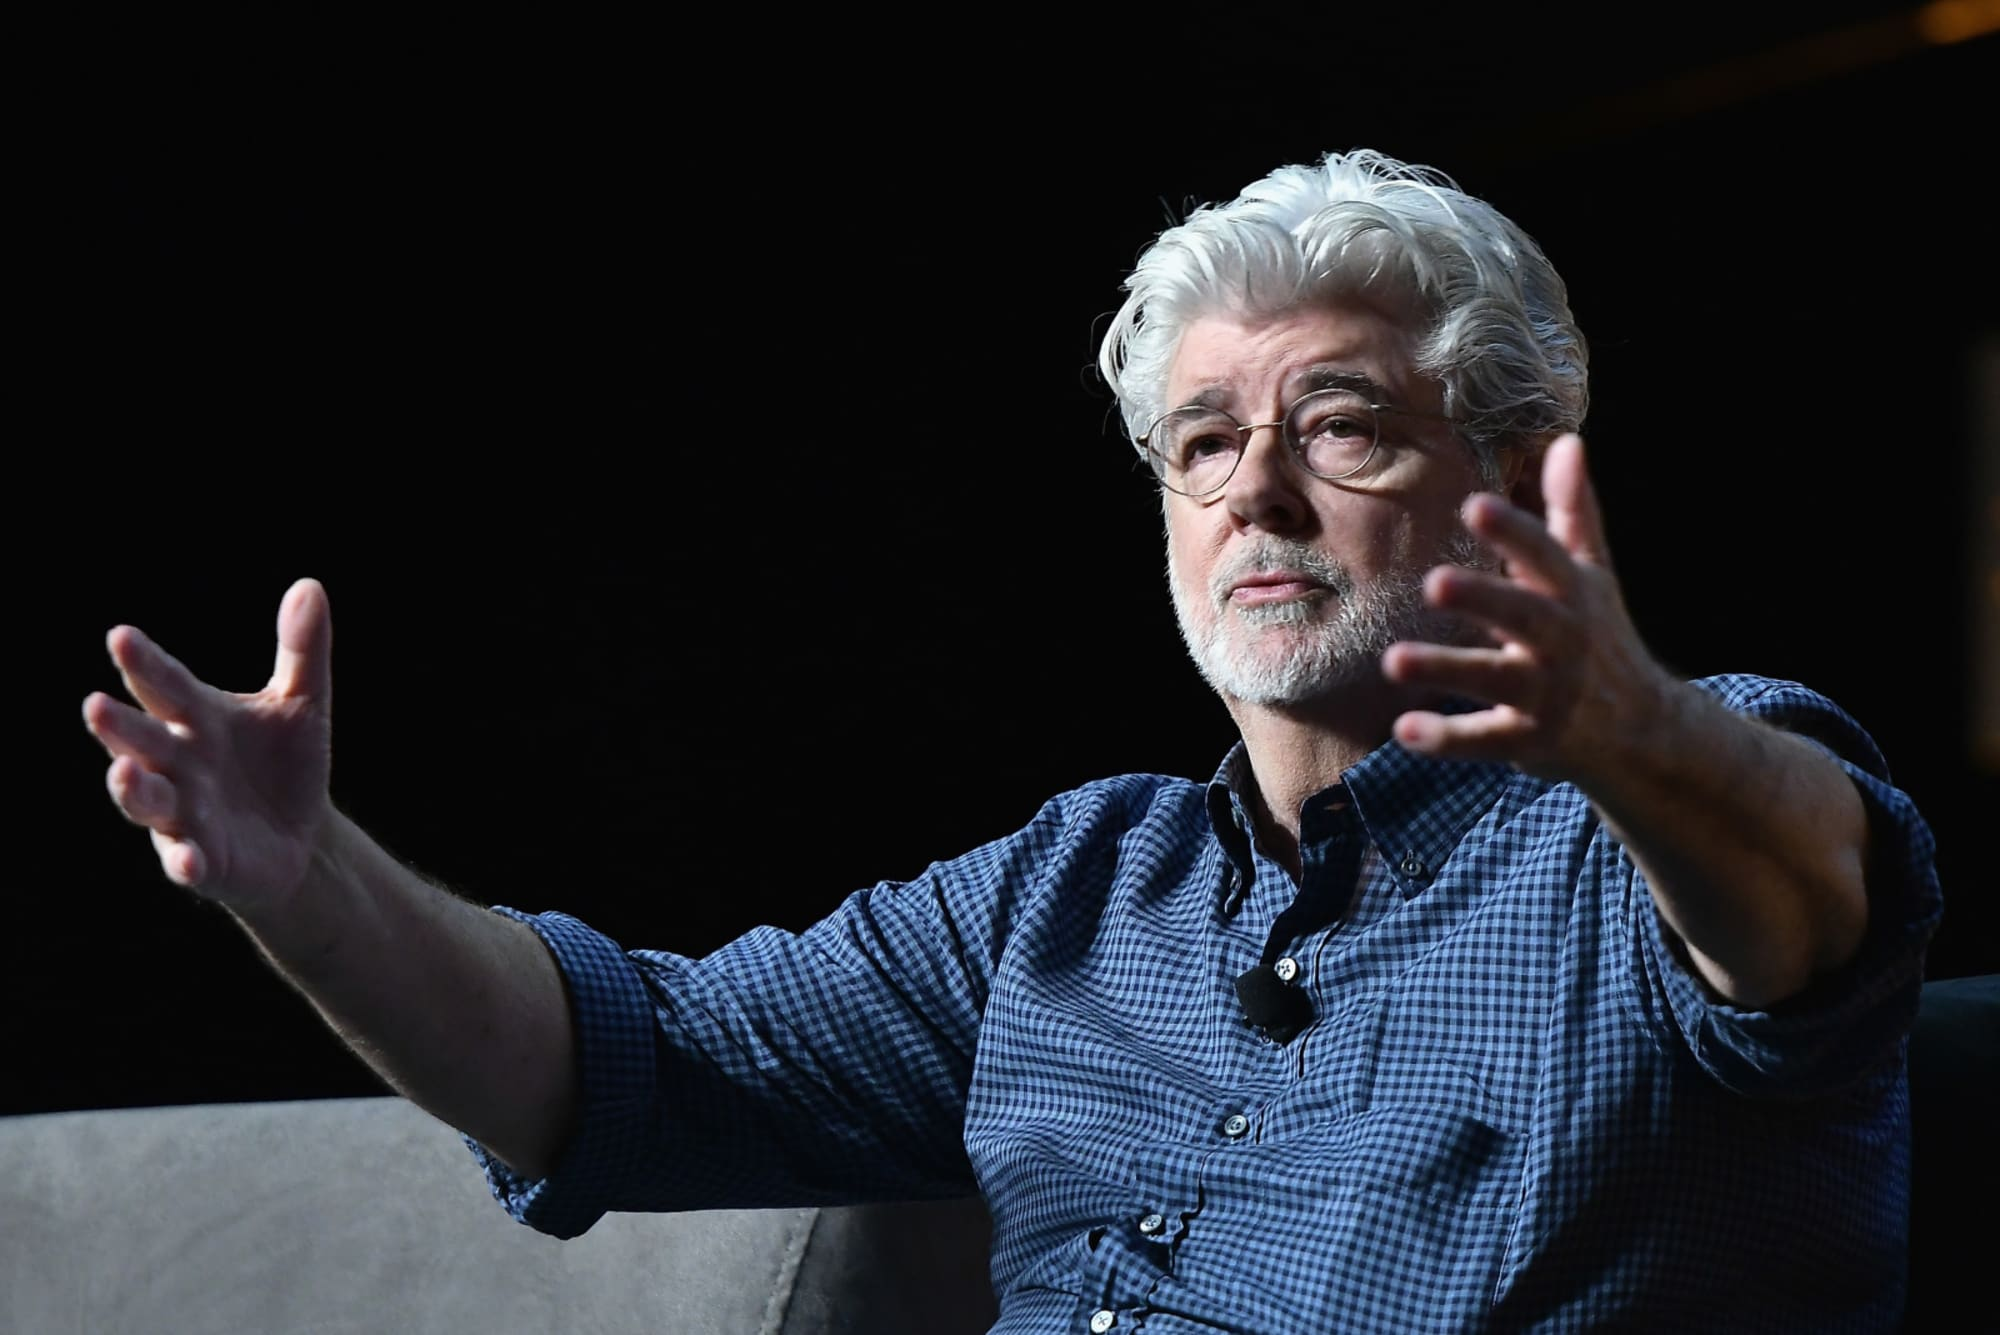 Star Wars Fans Want George Lucas To Release 4 Hour Revenge Of The Sith